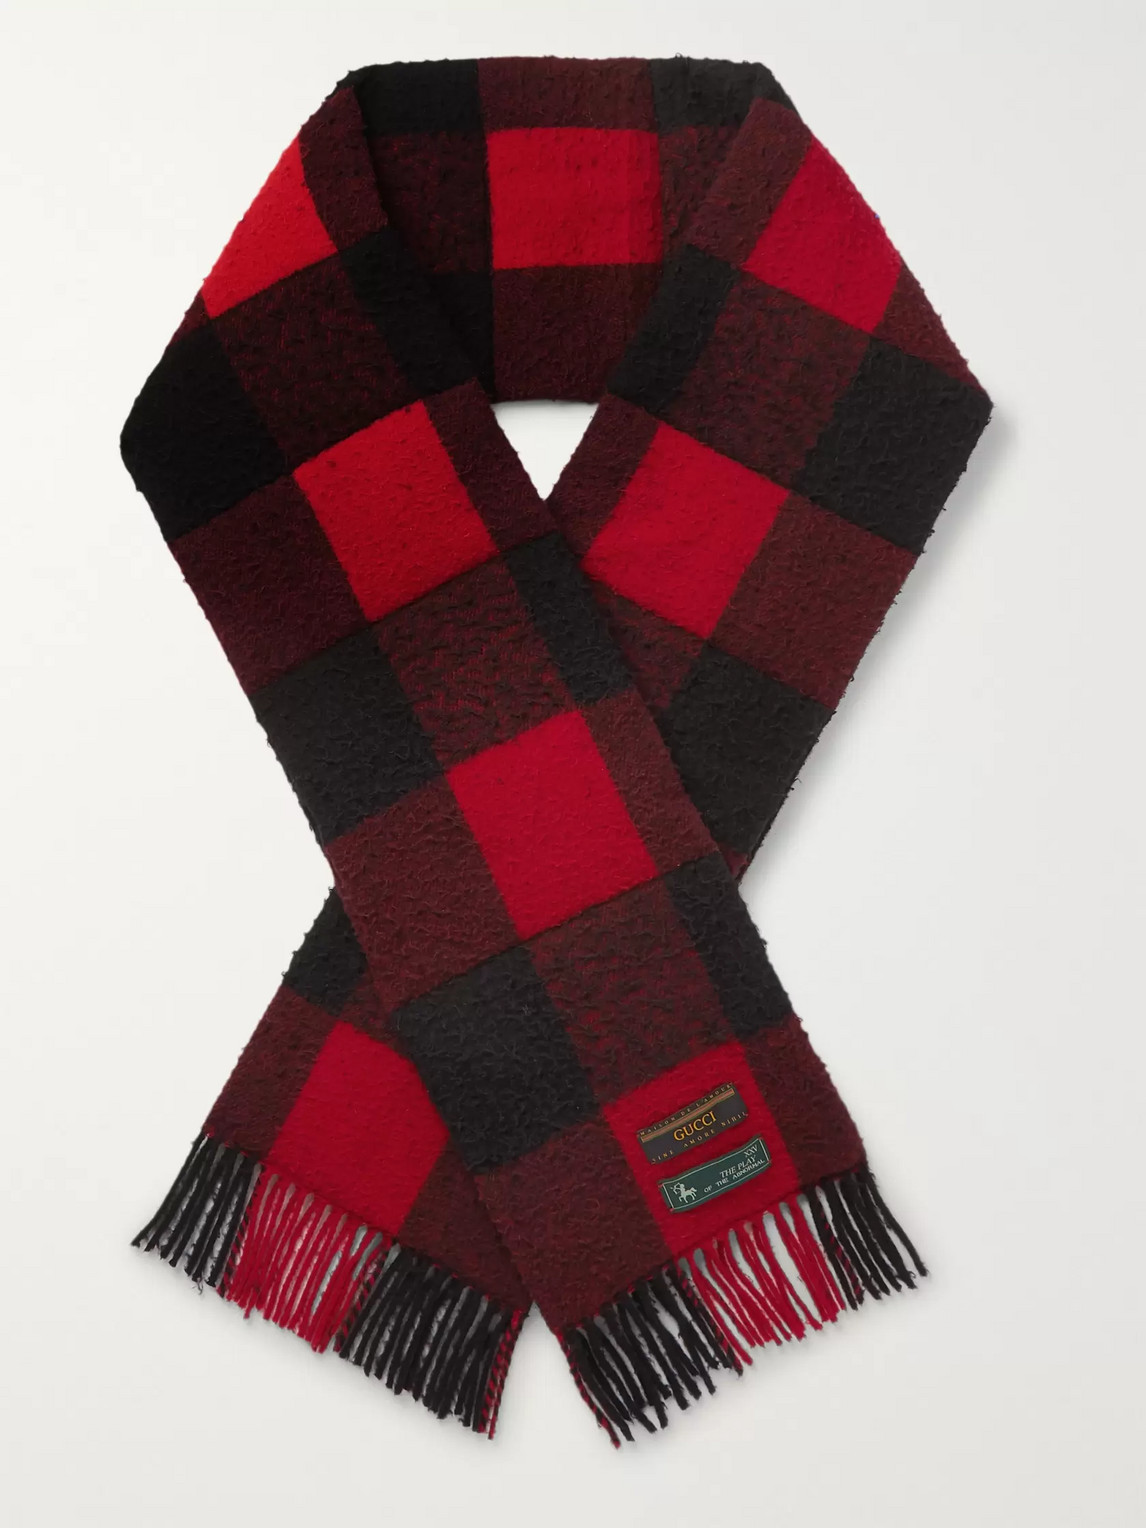 gucci - fringed padded checked wool scarf - men - red